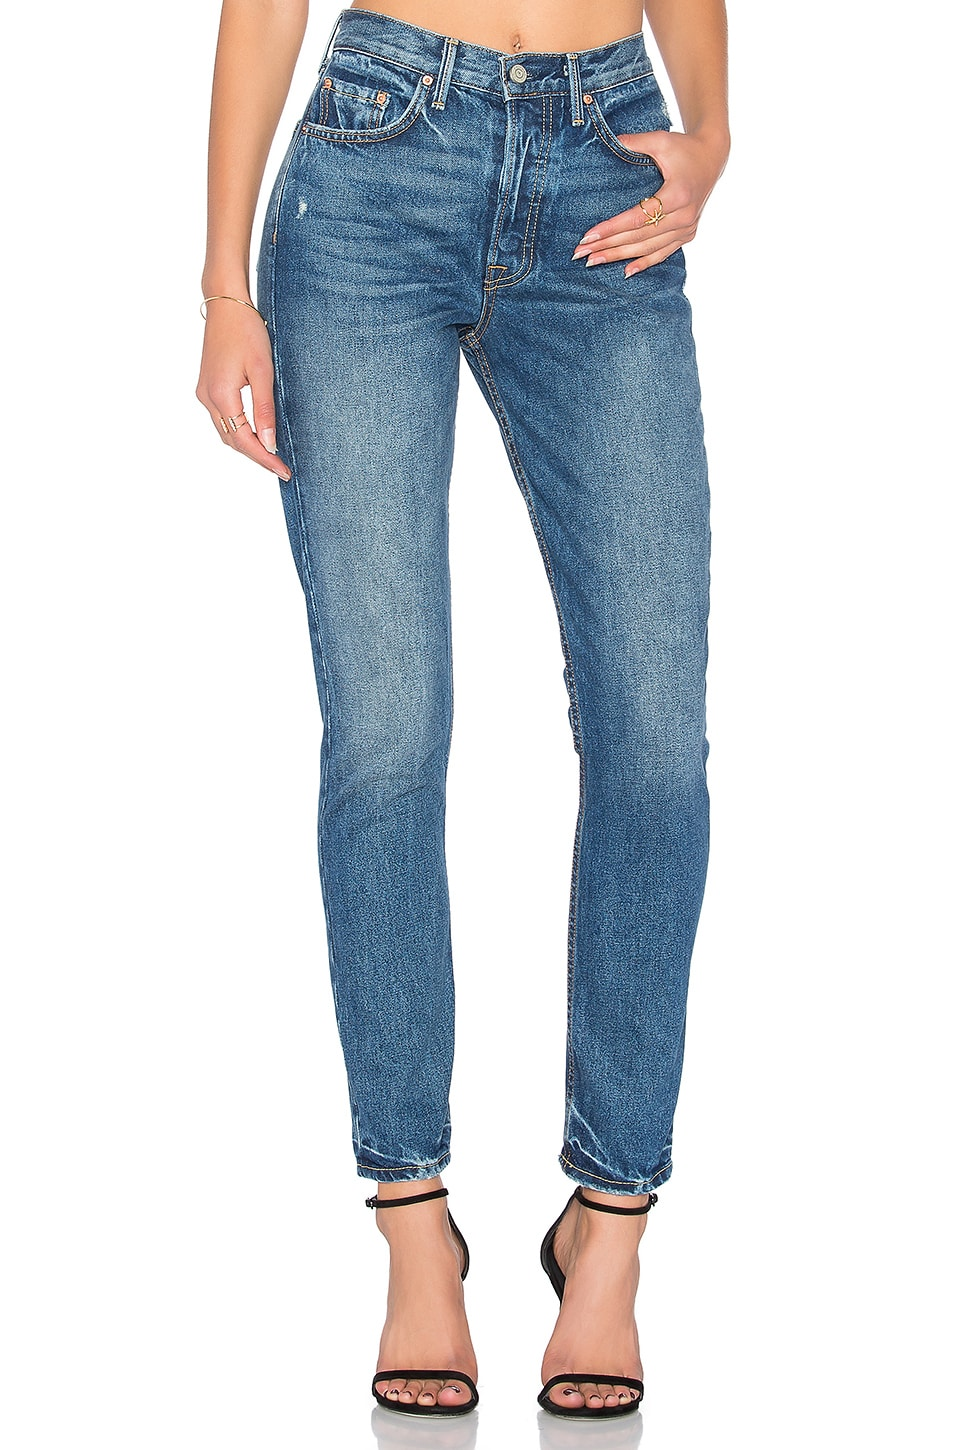 GRLFRND Karolina High-Rise Skinny Jean in Close to You